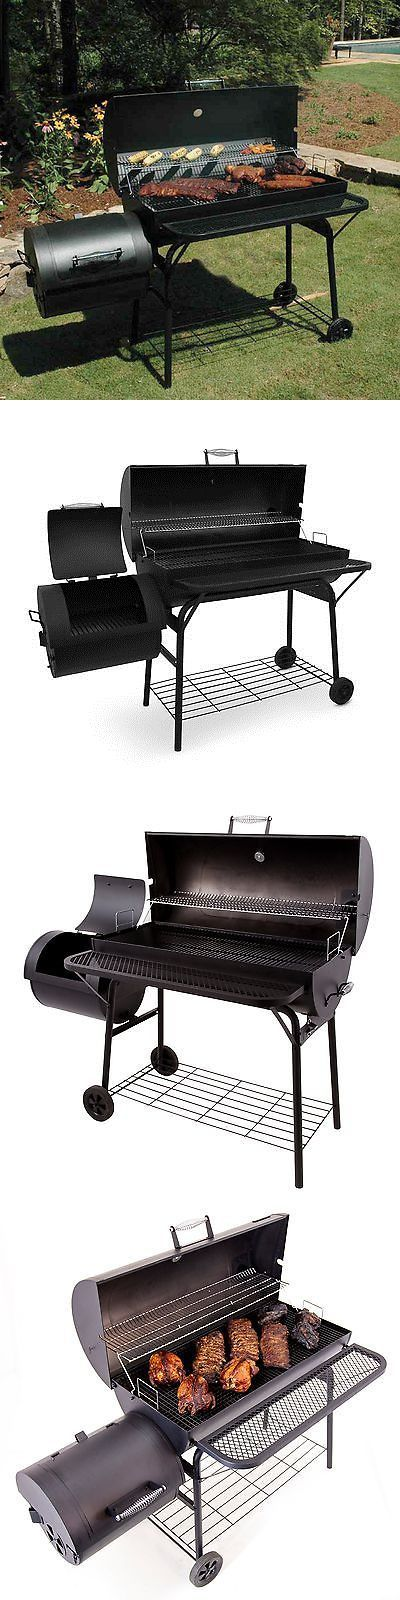 Barbecues Grills and Smokers 151621: Char-Broil American Gourmet Deluxe Offset Charcoal Smoker And Grill -> BUY IT NOW ONLY: $157.67 on eBay!